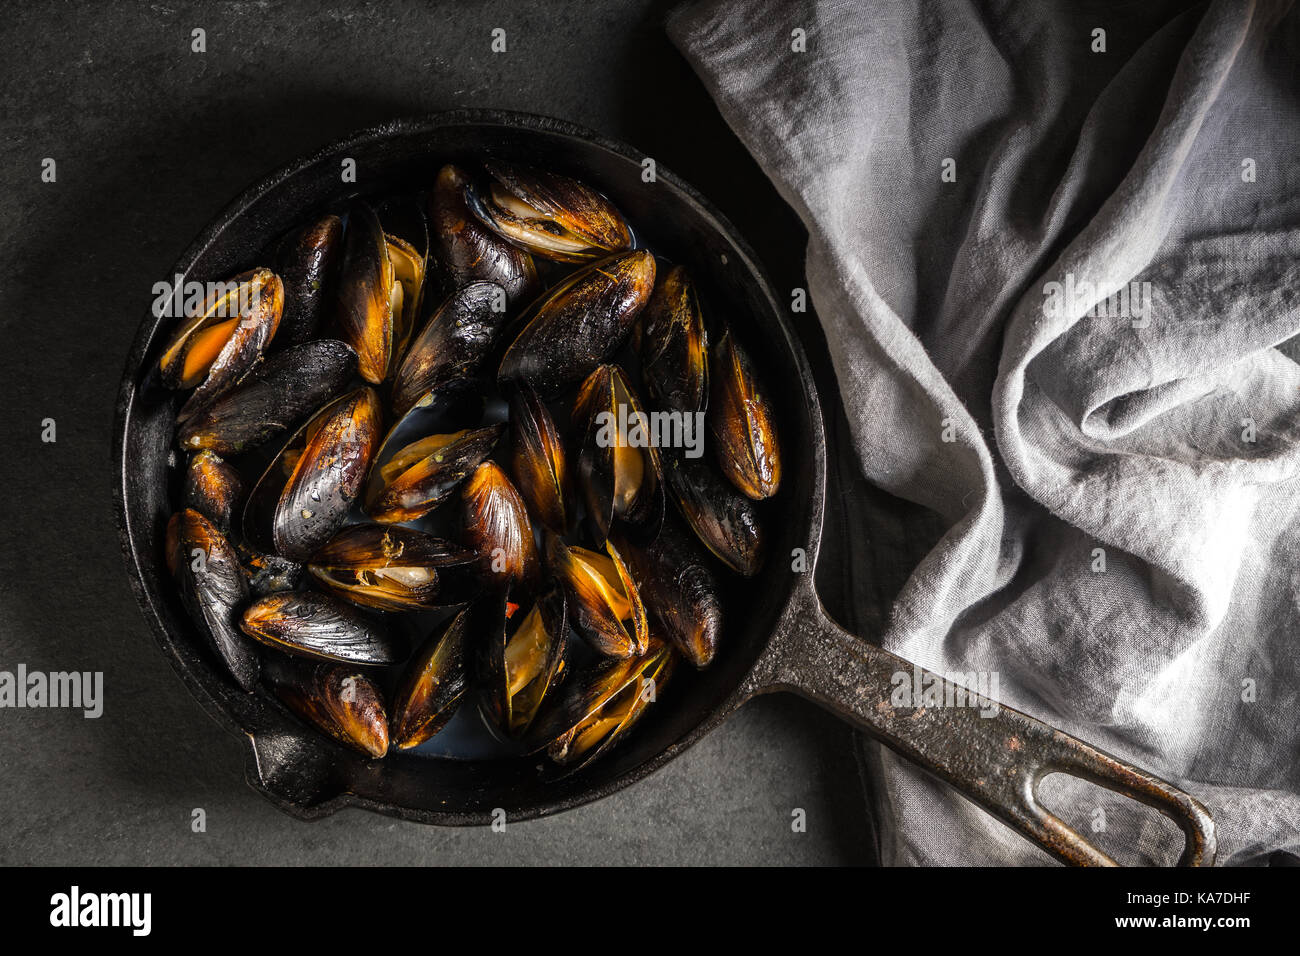 Mussels on a cast-iron frying pan and napkin on a gray background diagonal horizontal - Stock Image